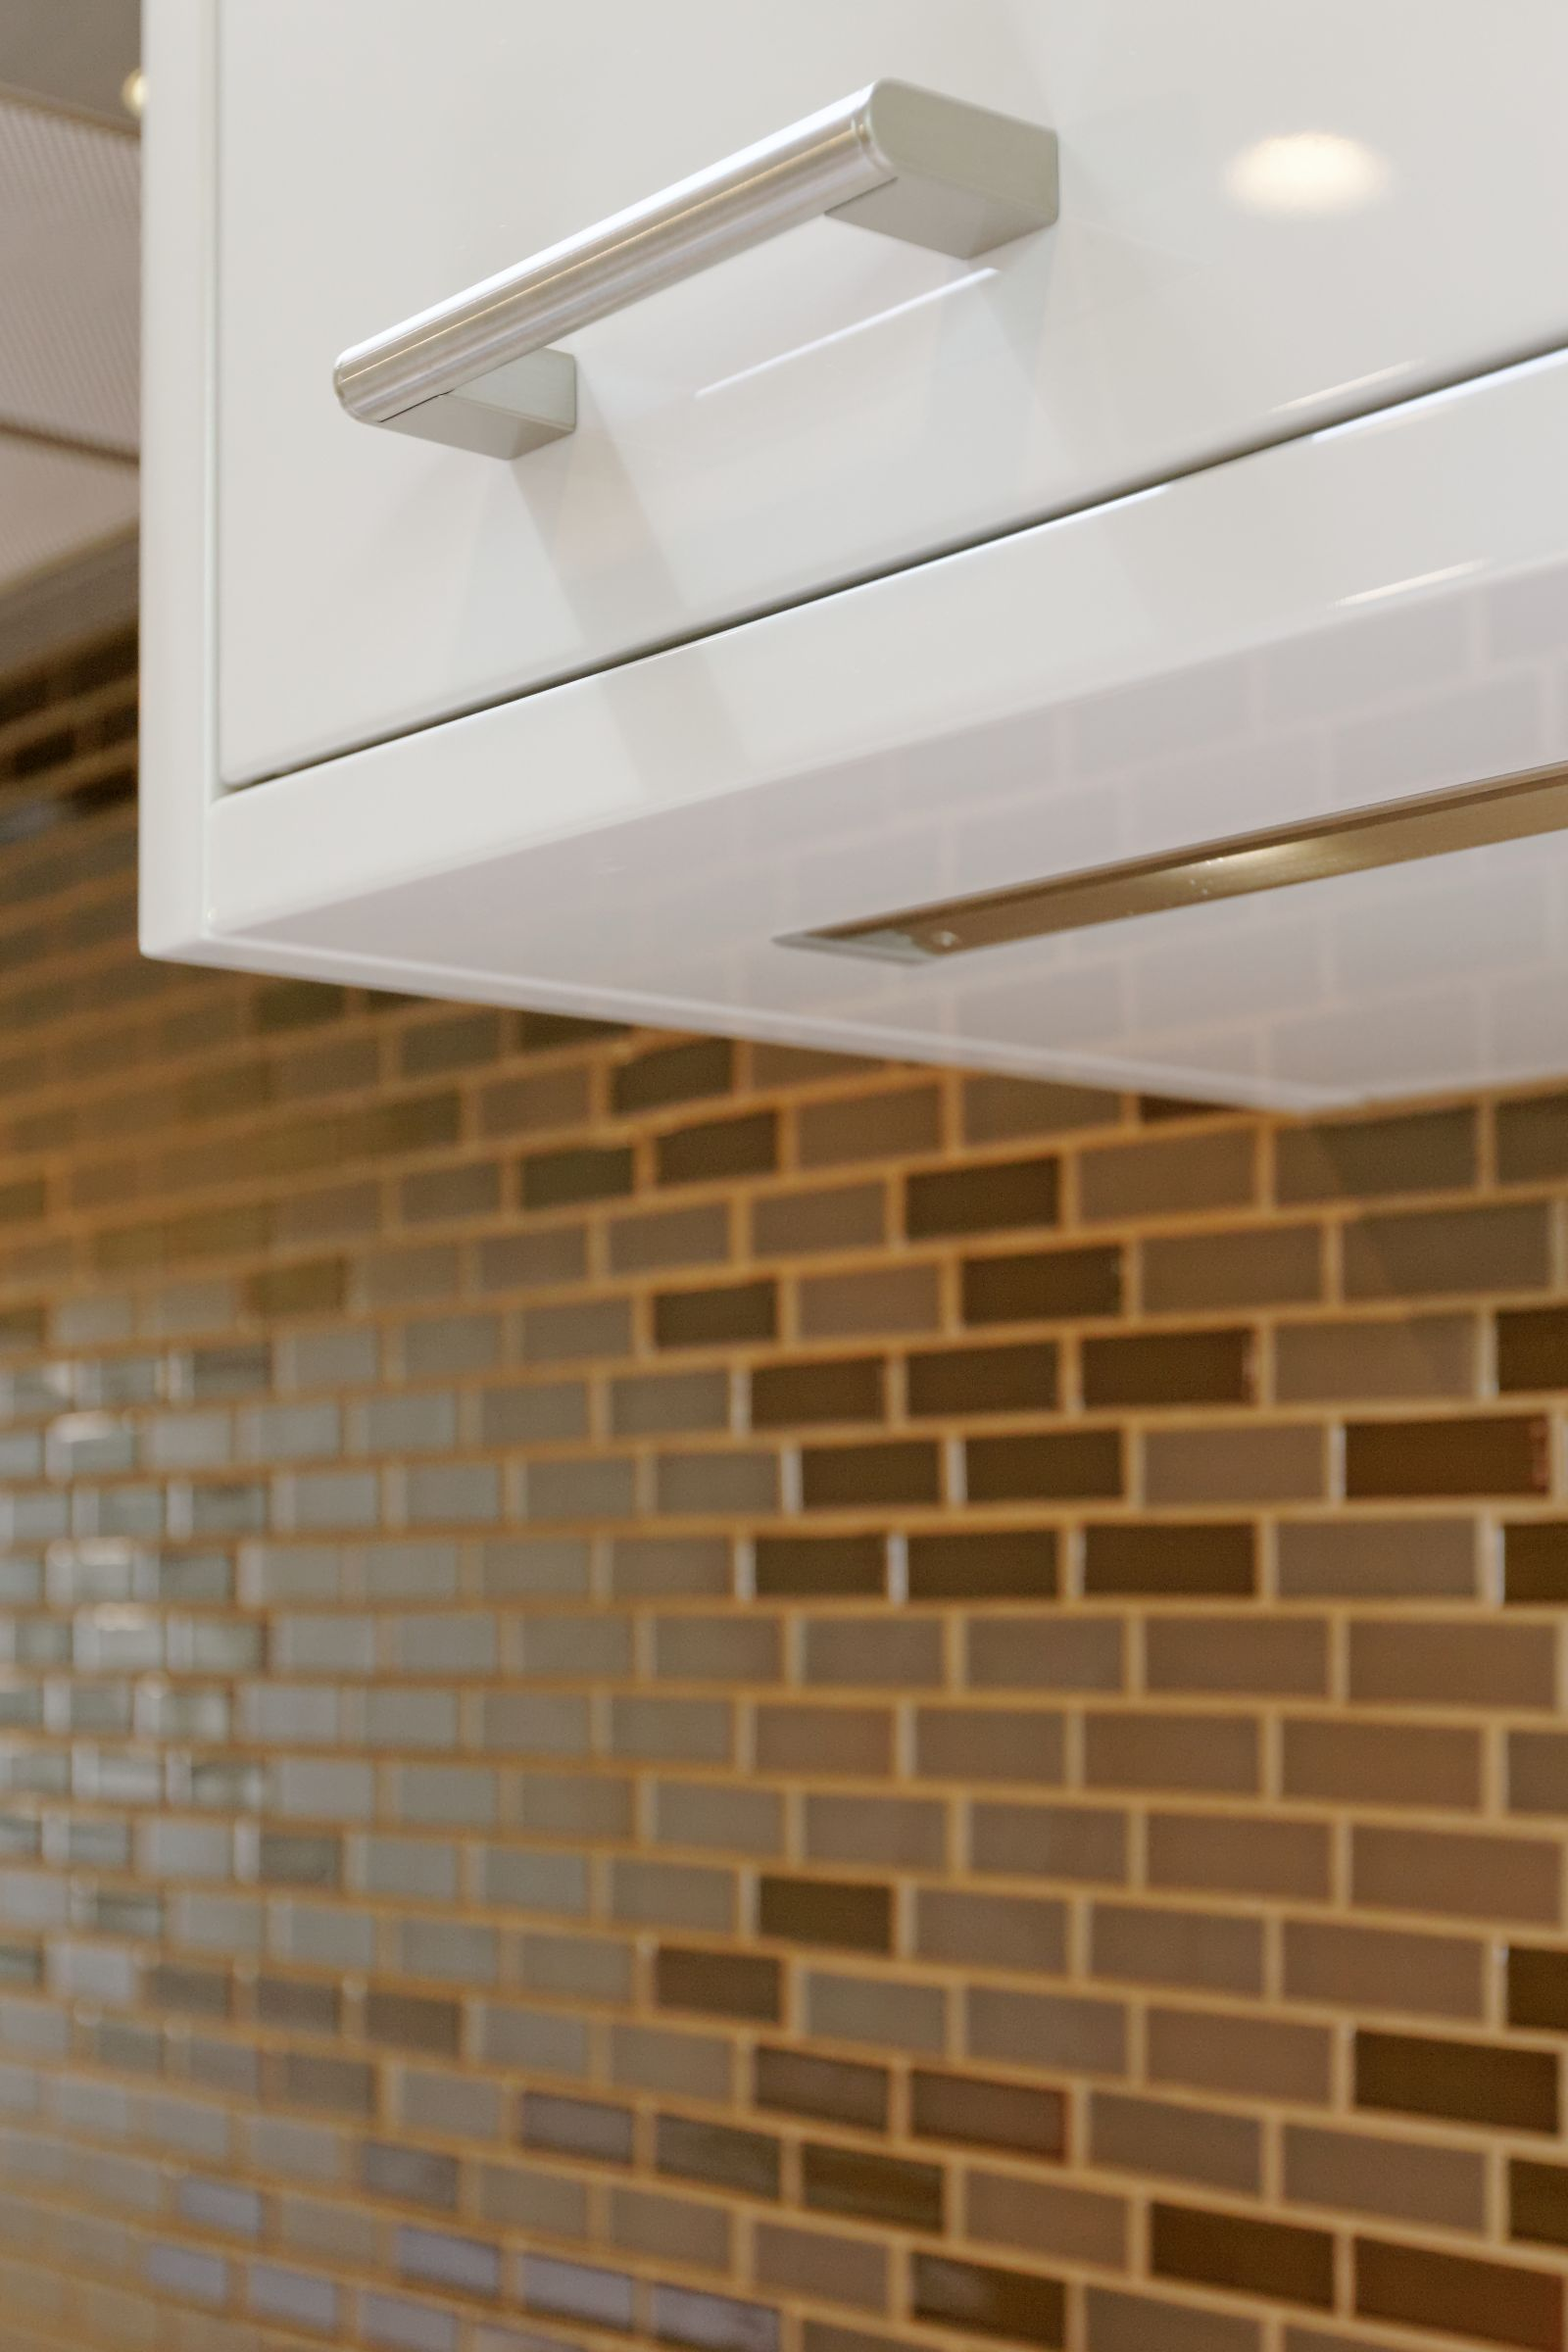 The thick undercabinet panels have integrated LED lighting.that angles backwards and provides even lighting.